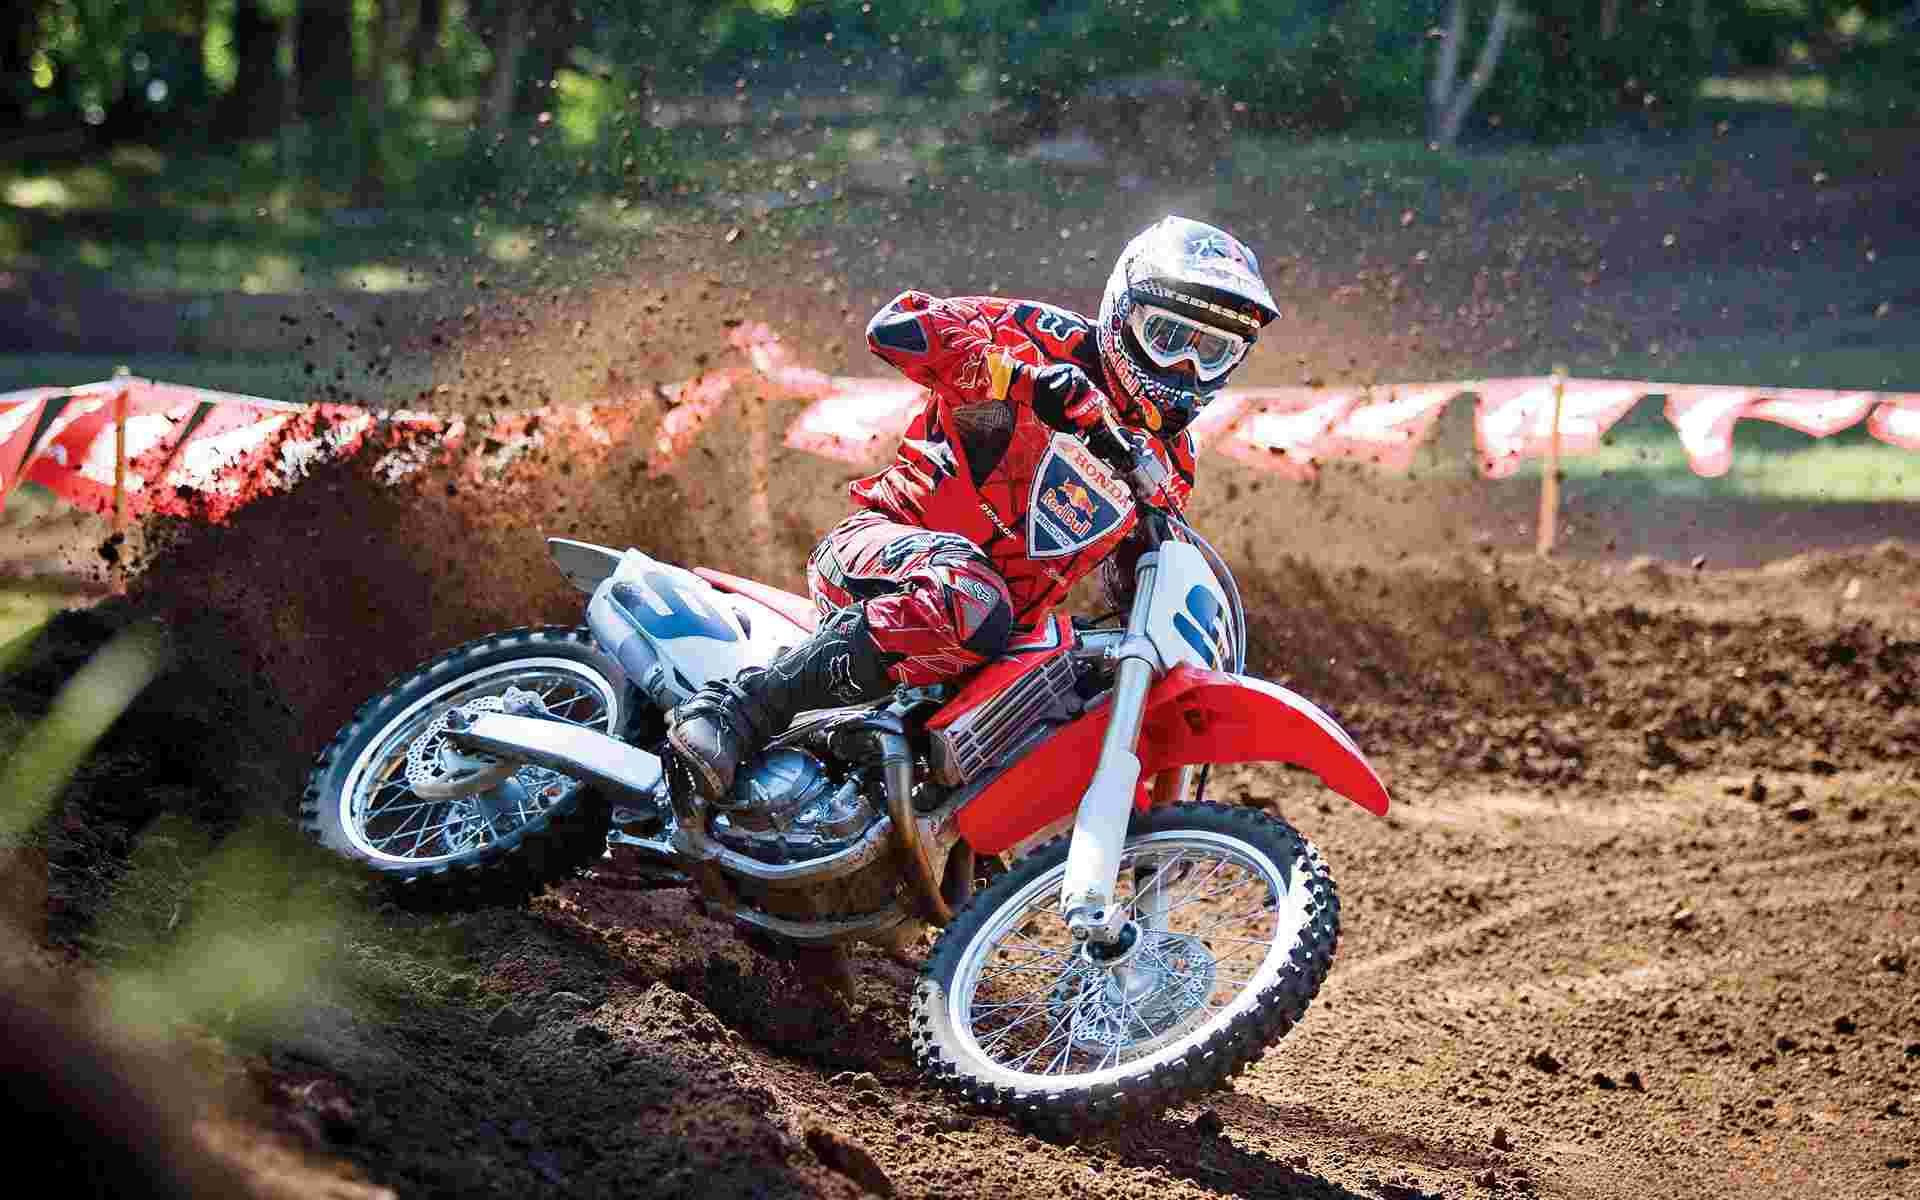 Stunning Pictures By Extreme Photographers Motocross Motorcycle Wallpaper Best Road Bike